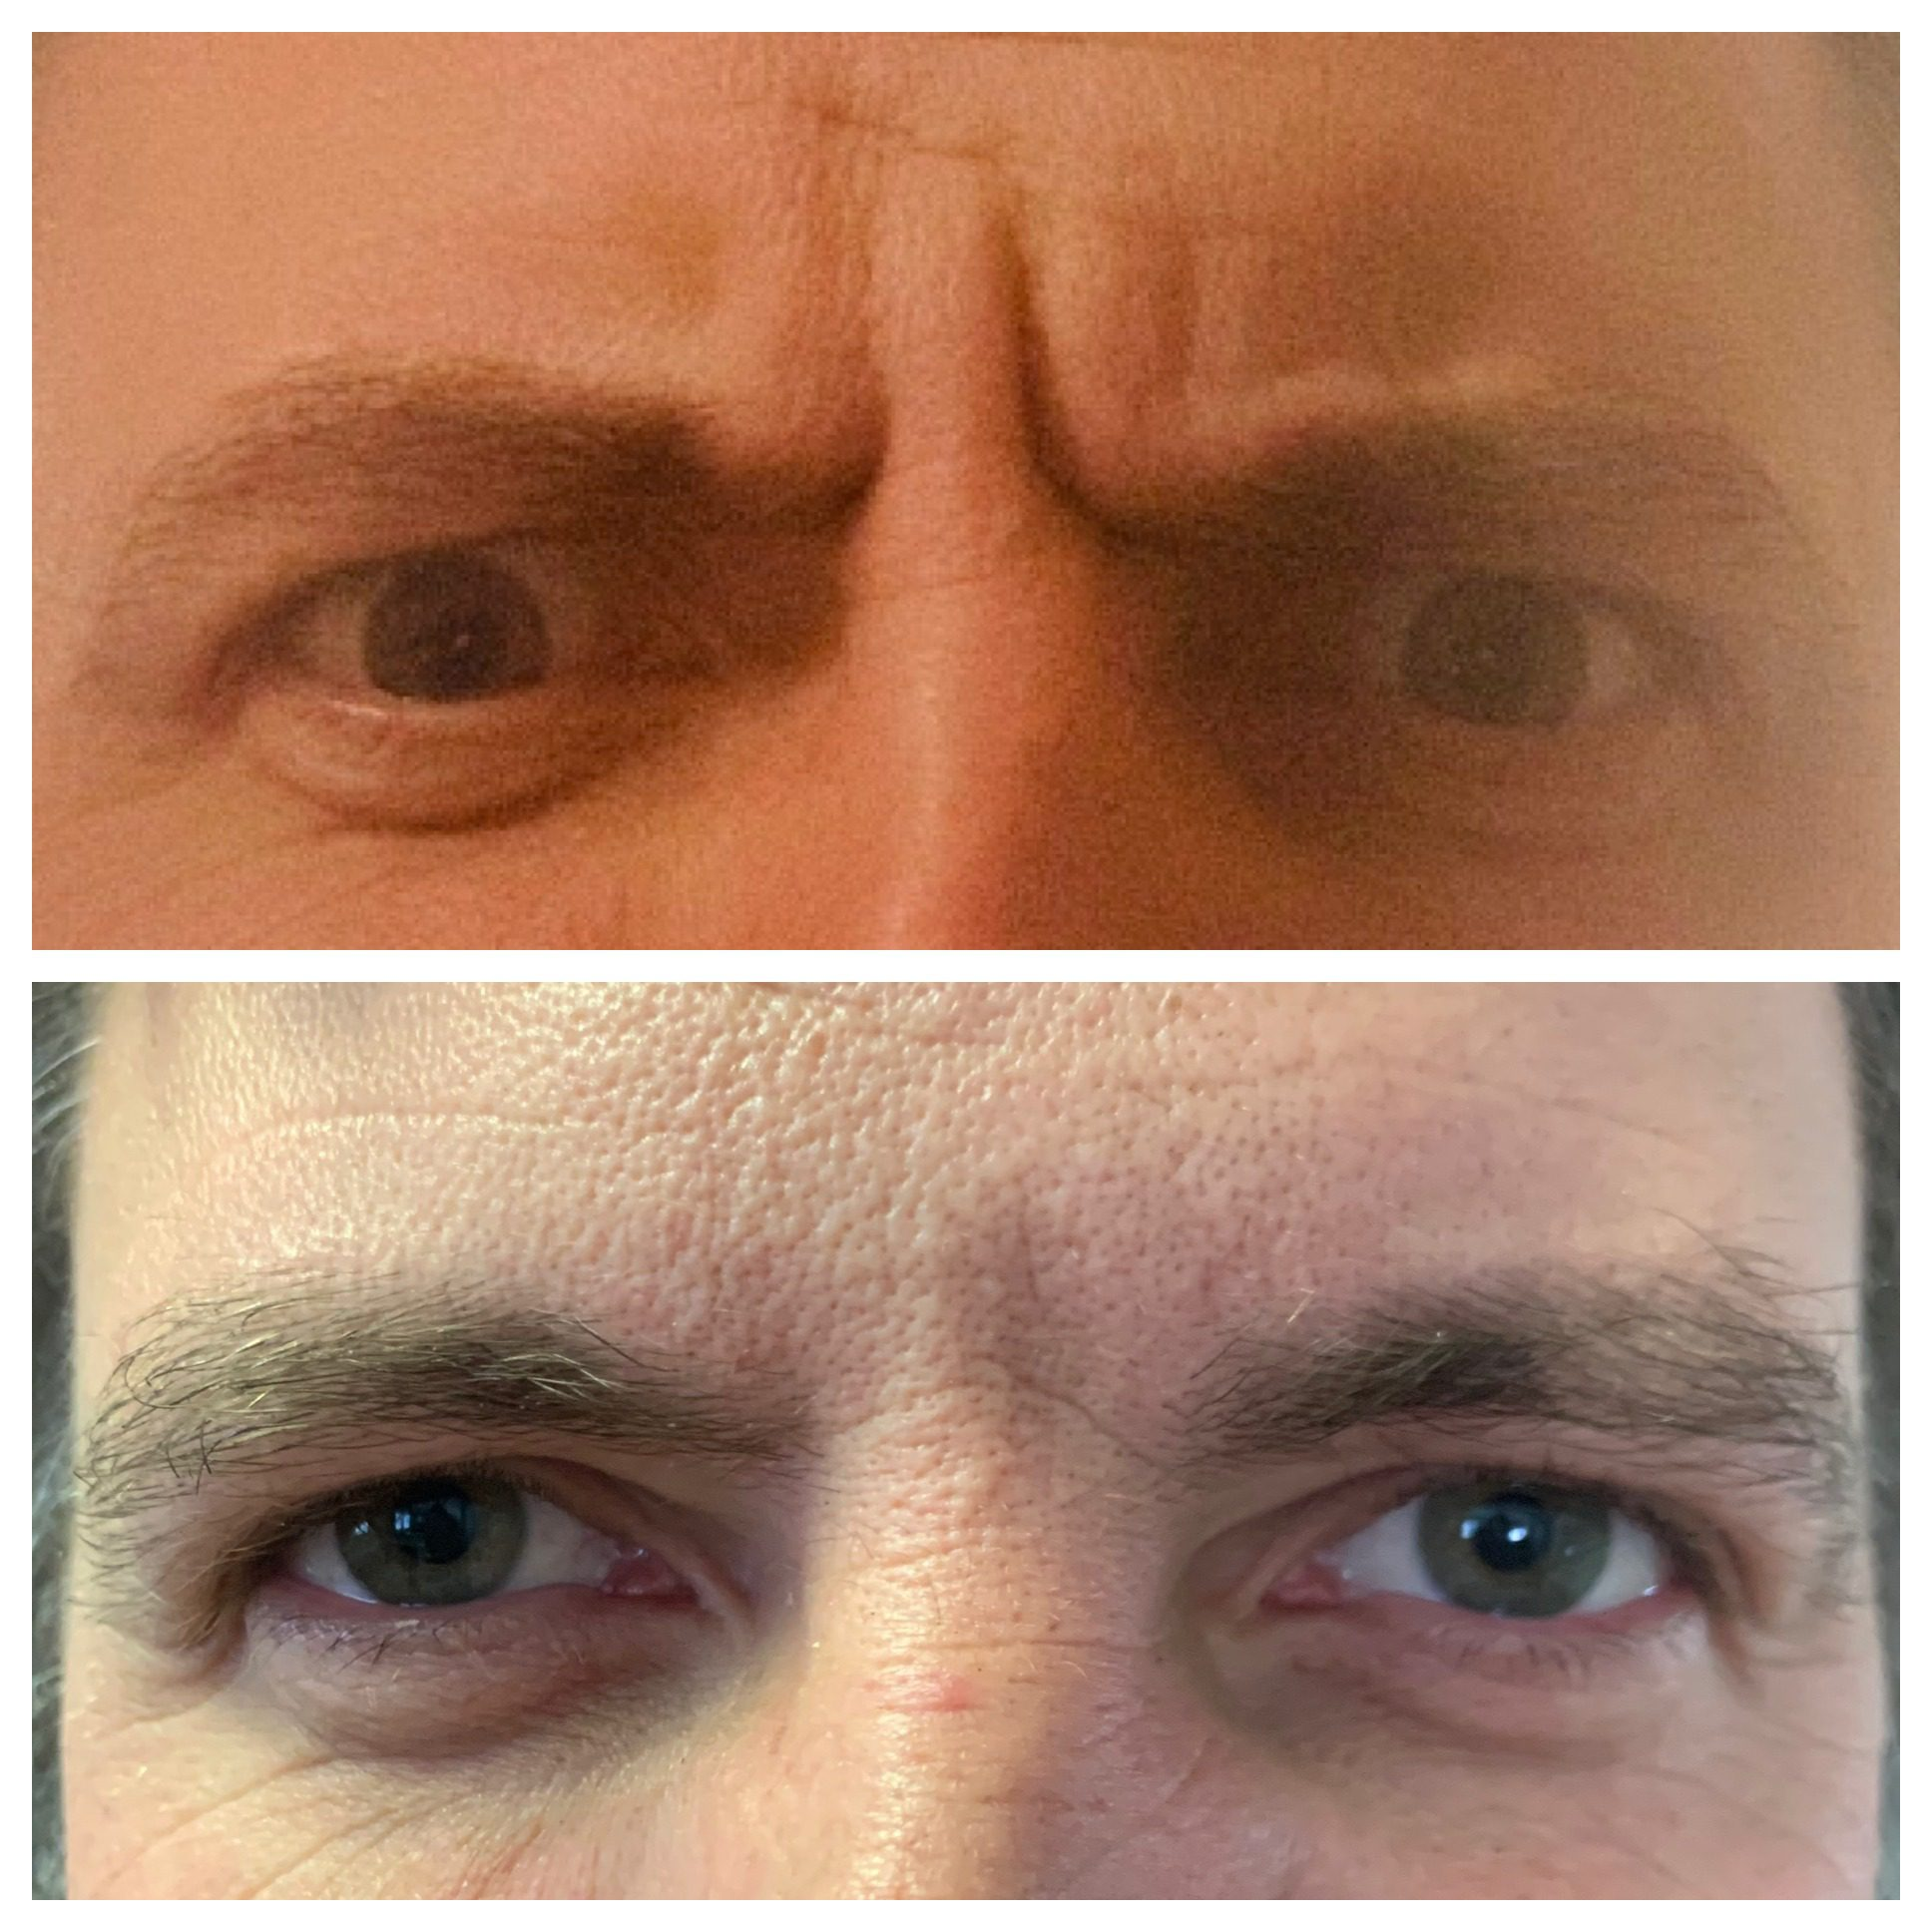 Botox - 1 week after injections